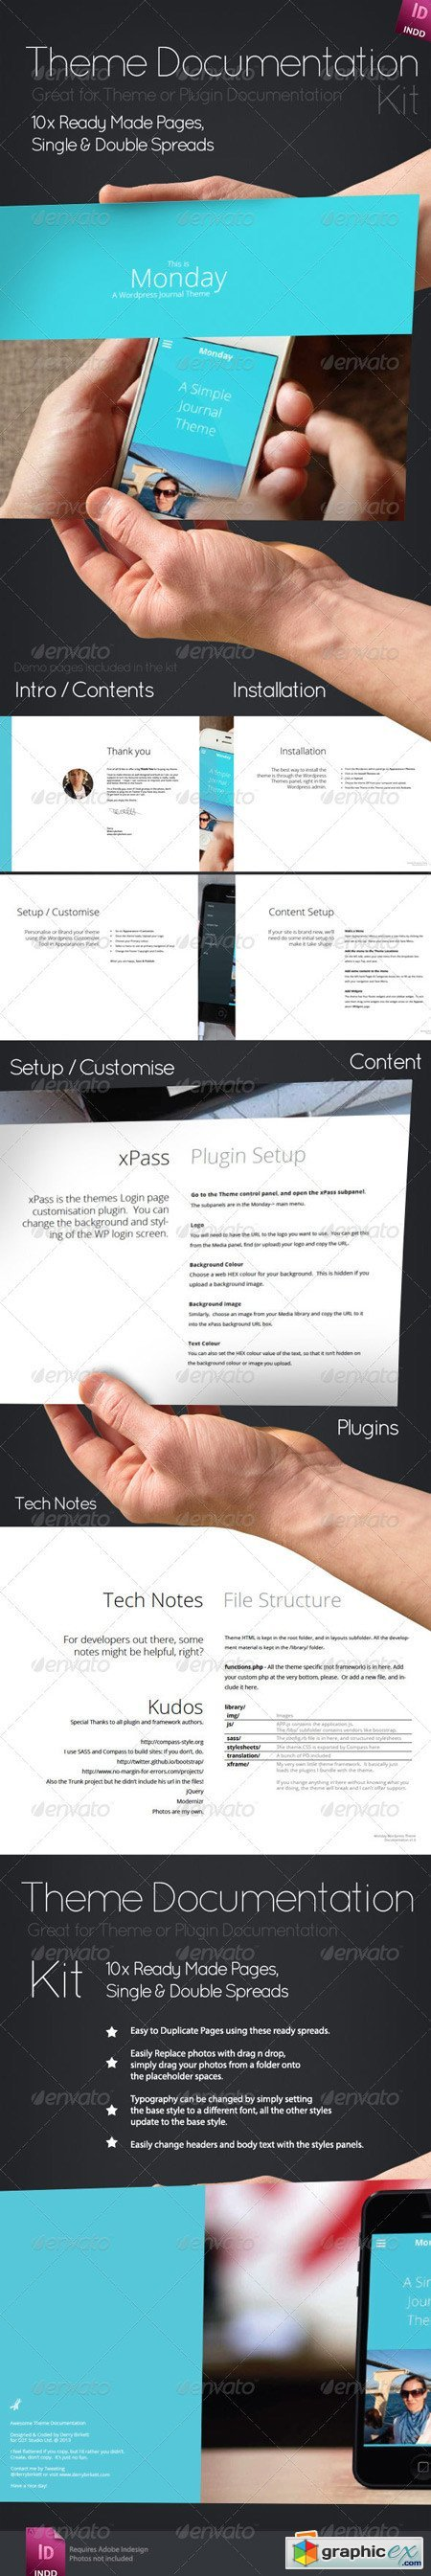 Wordpress Theme & Plugin Documentation Kit